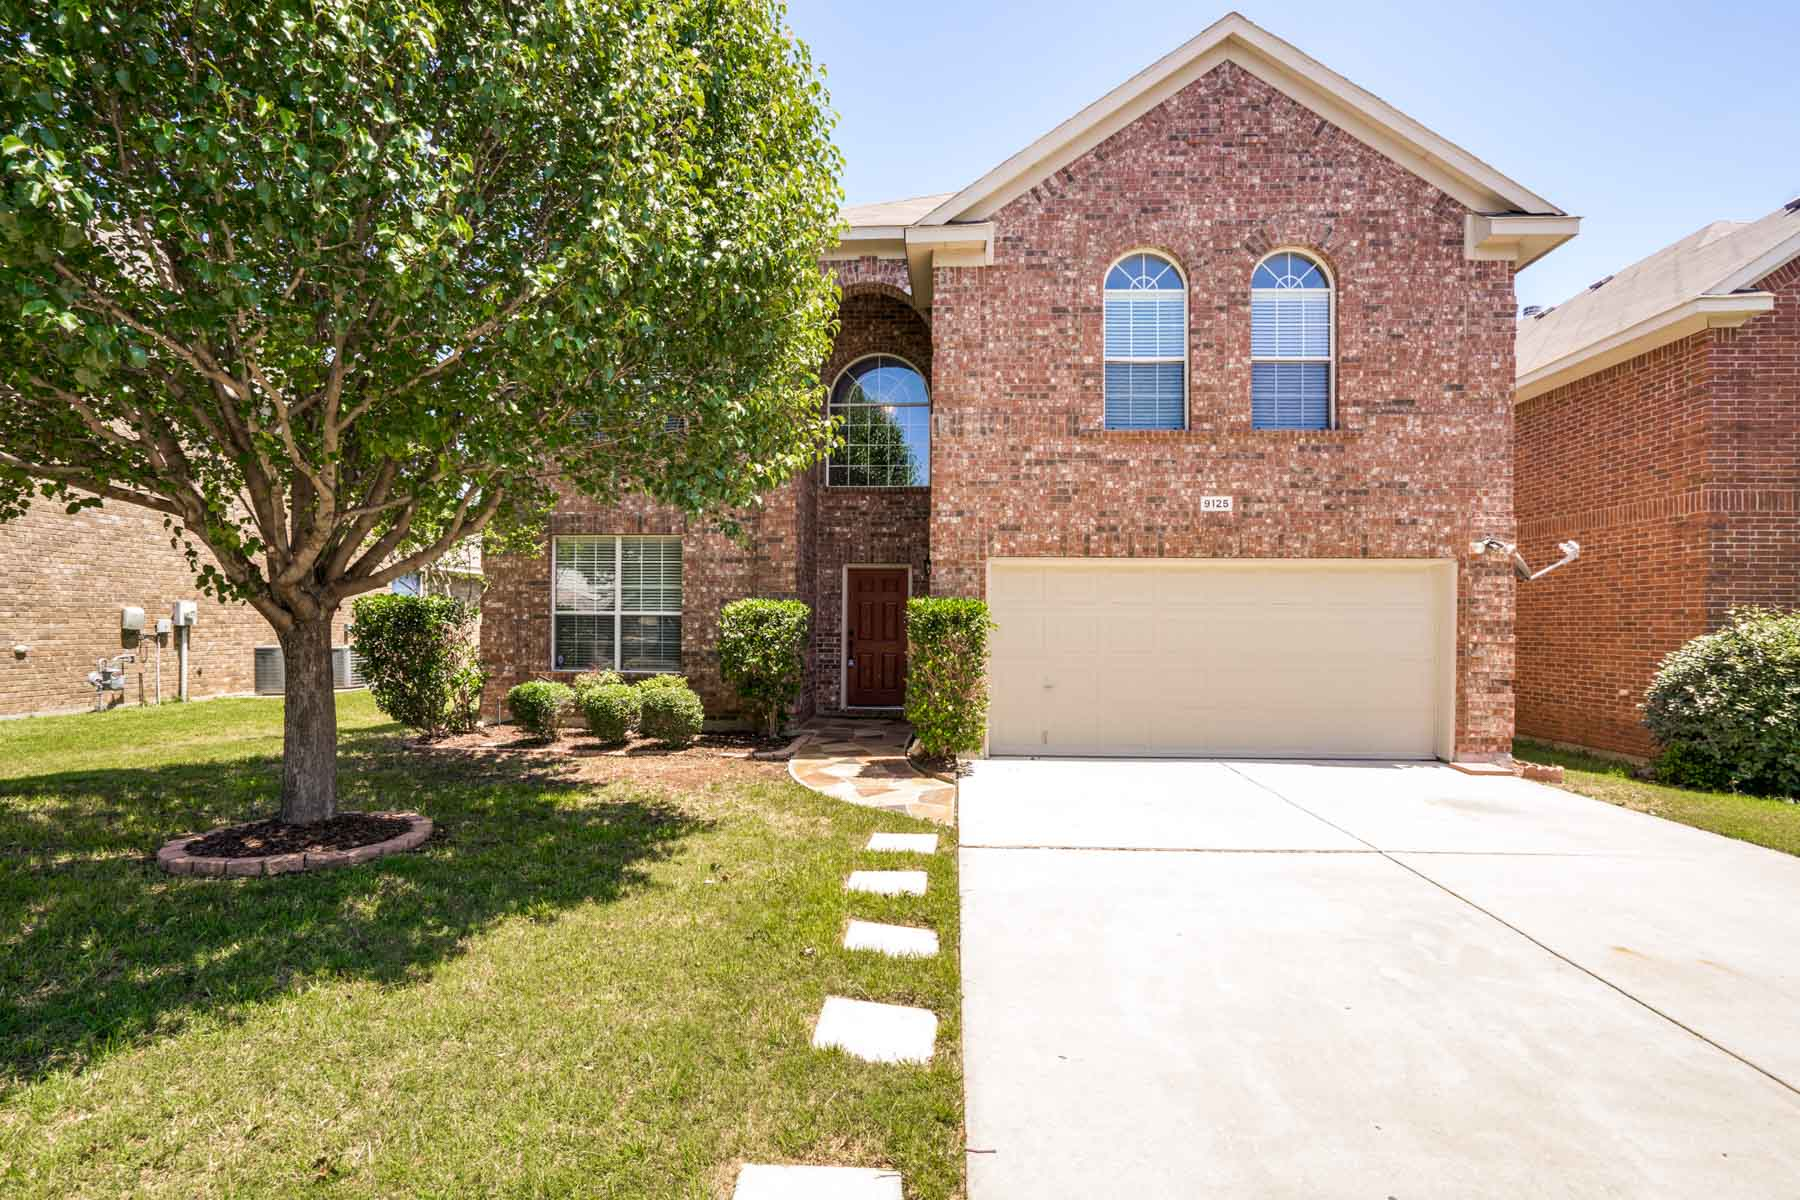 Maison unifamiliale pour l Vente à Beautifully Updated in Summer Creek Ranch 9125 Friendswood Drive Fort Worth, Texas, 76123 États-Unis